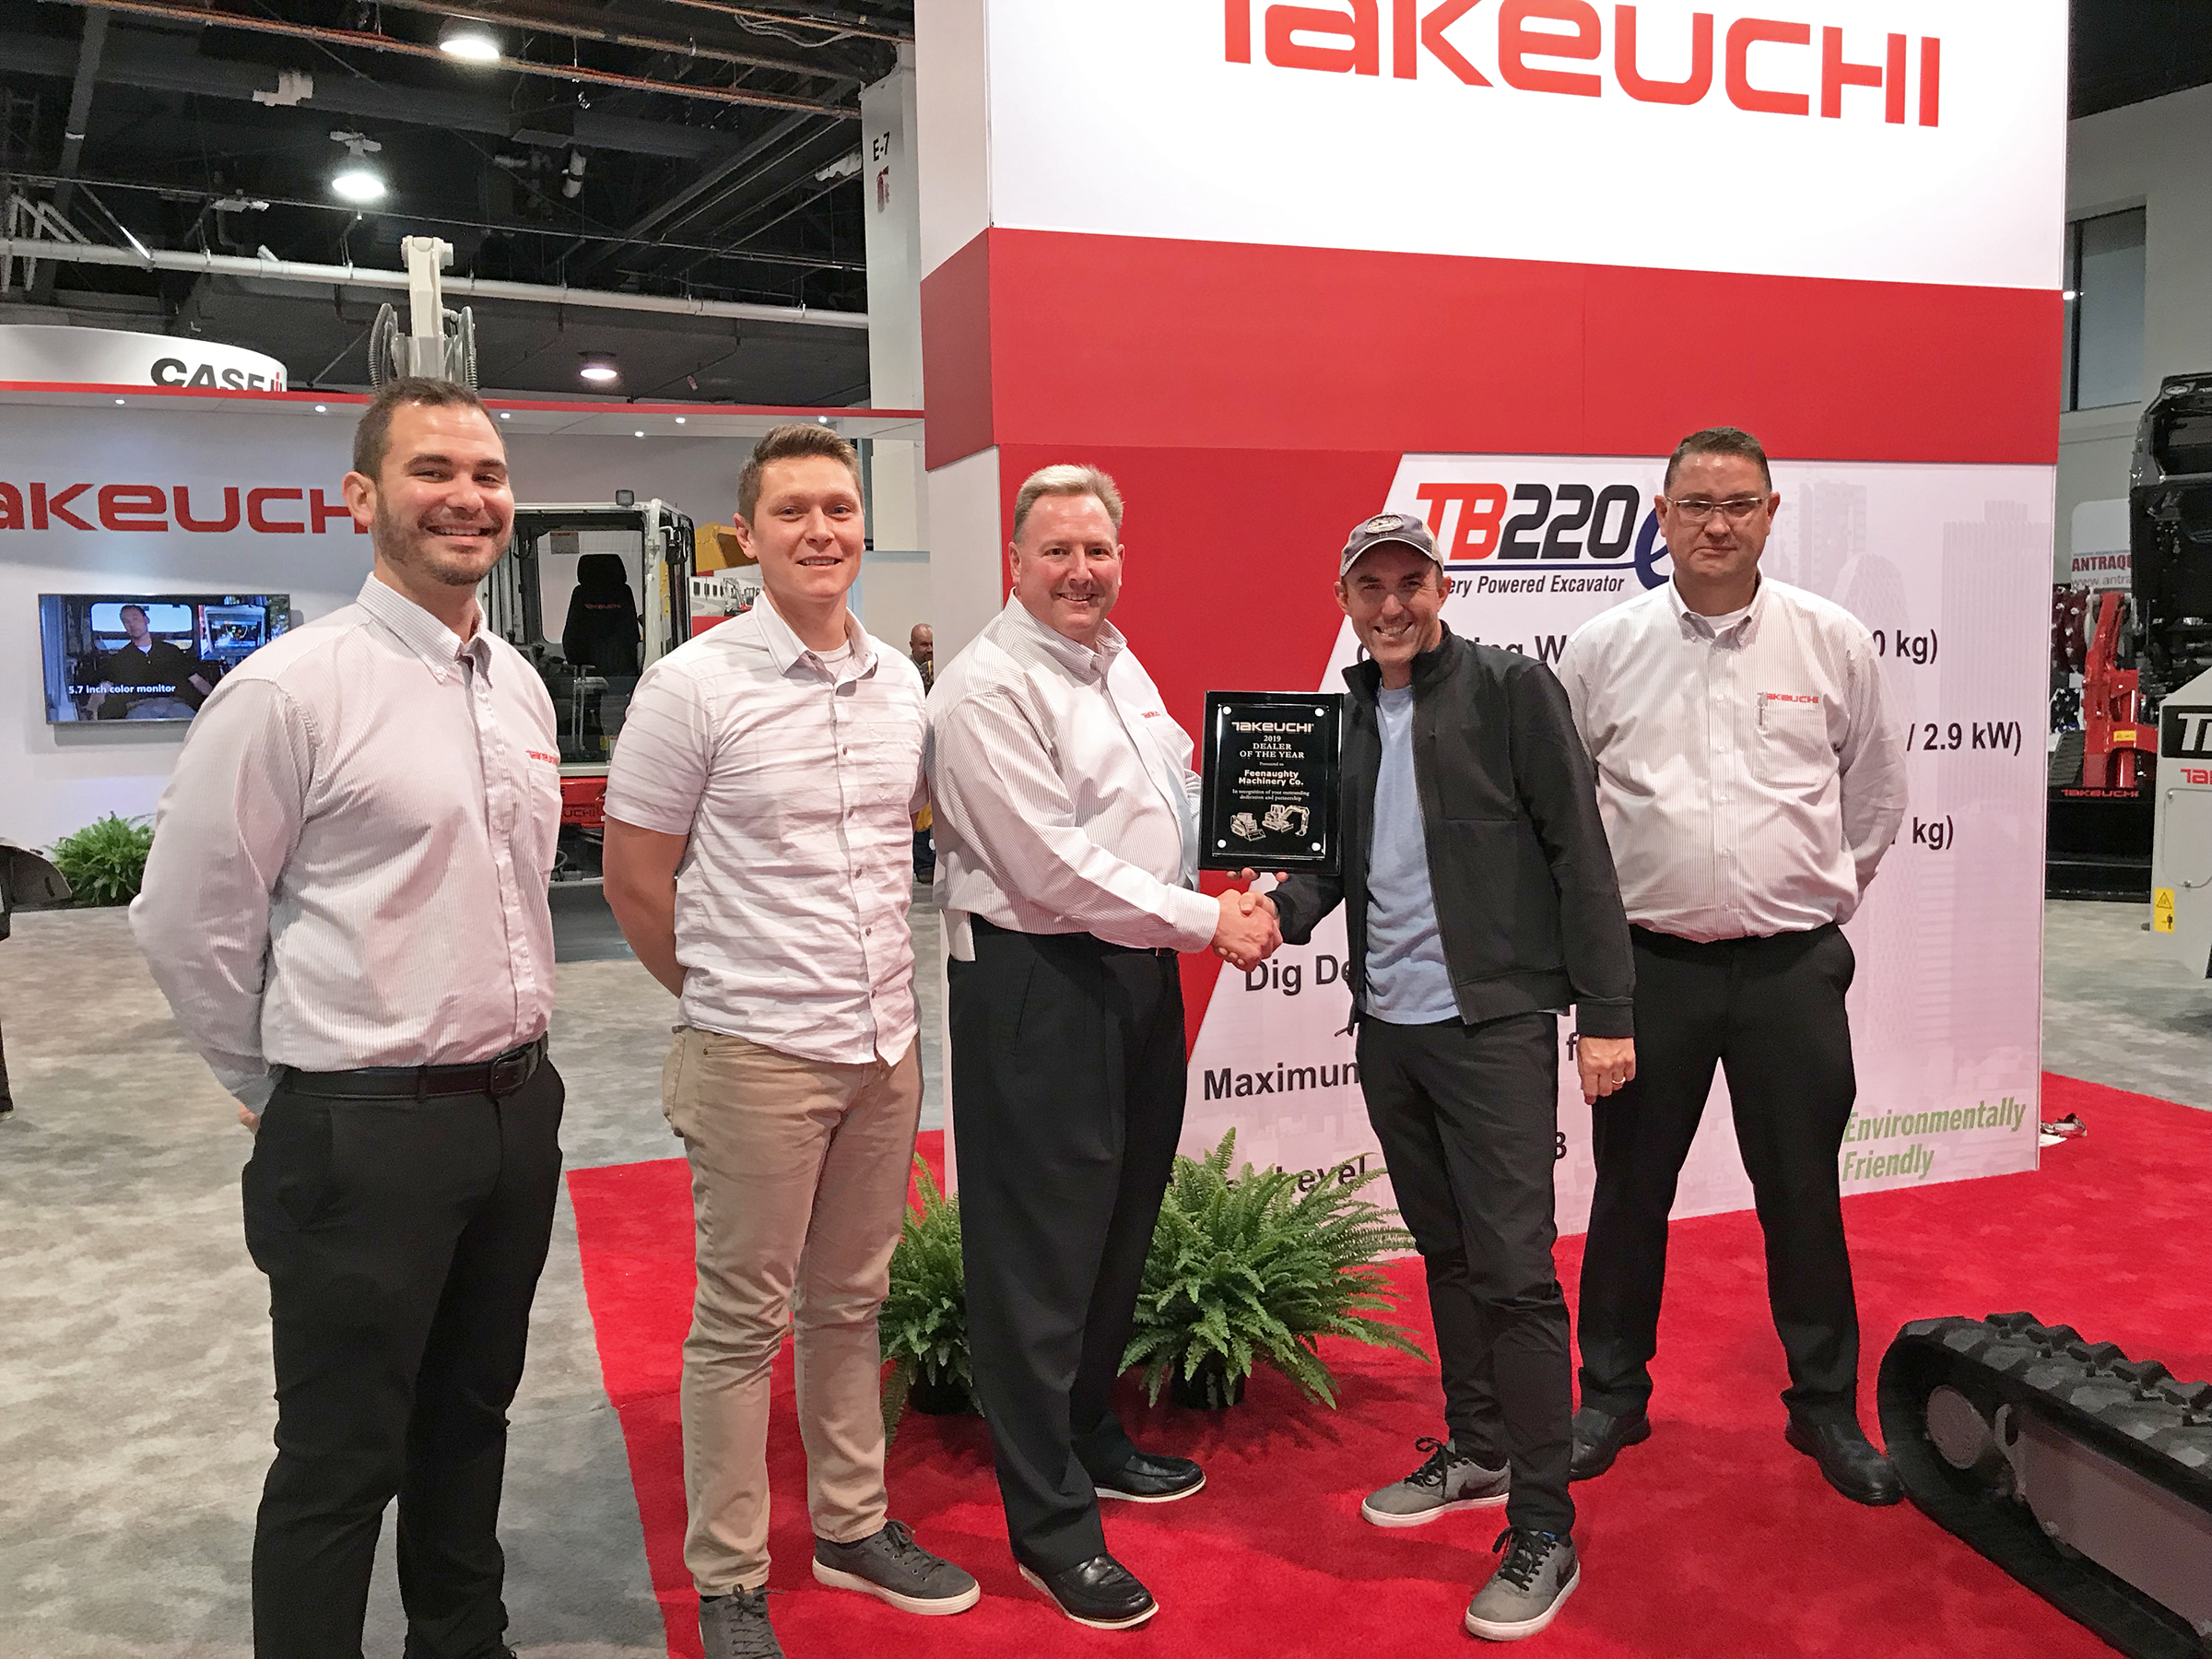 Randy Harris, Feenaughty president, accepts takeuchi dealer of the year award